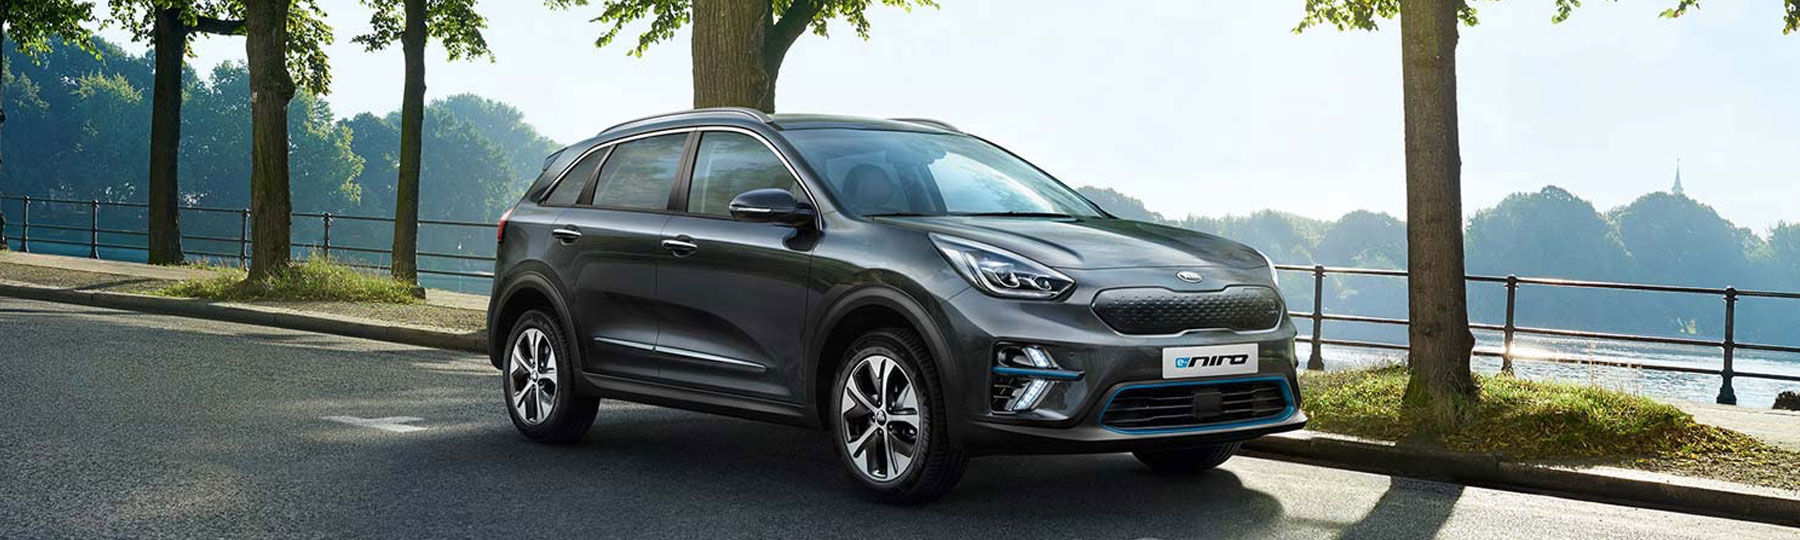 New Kia e-Niro New Car Offer